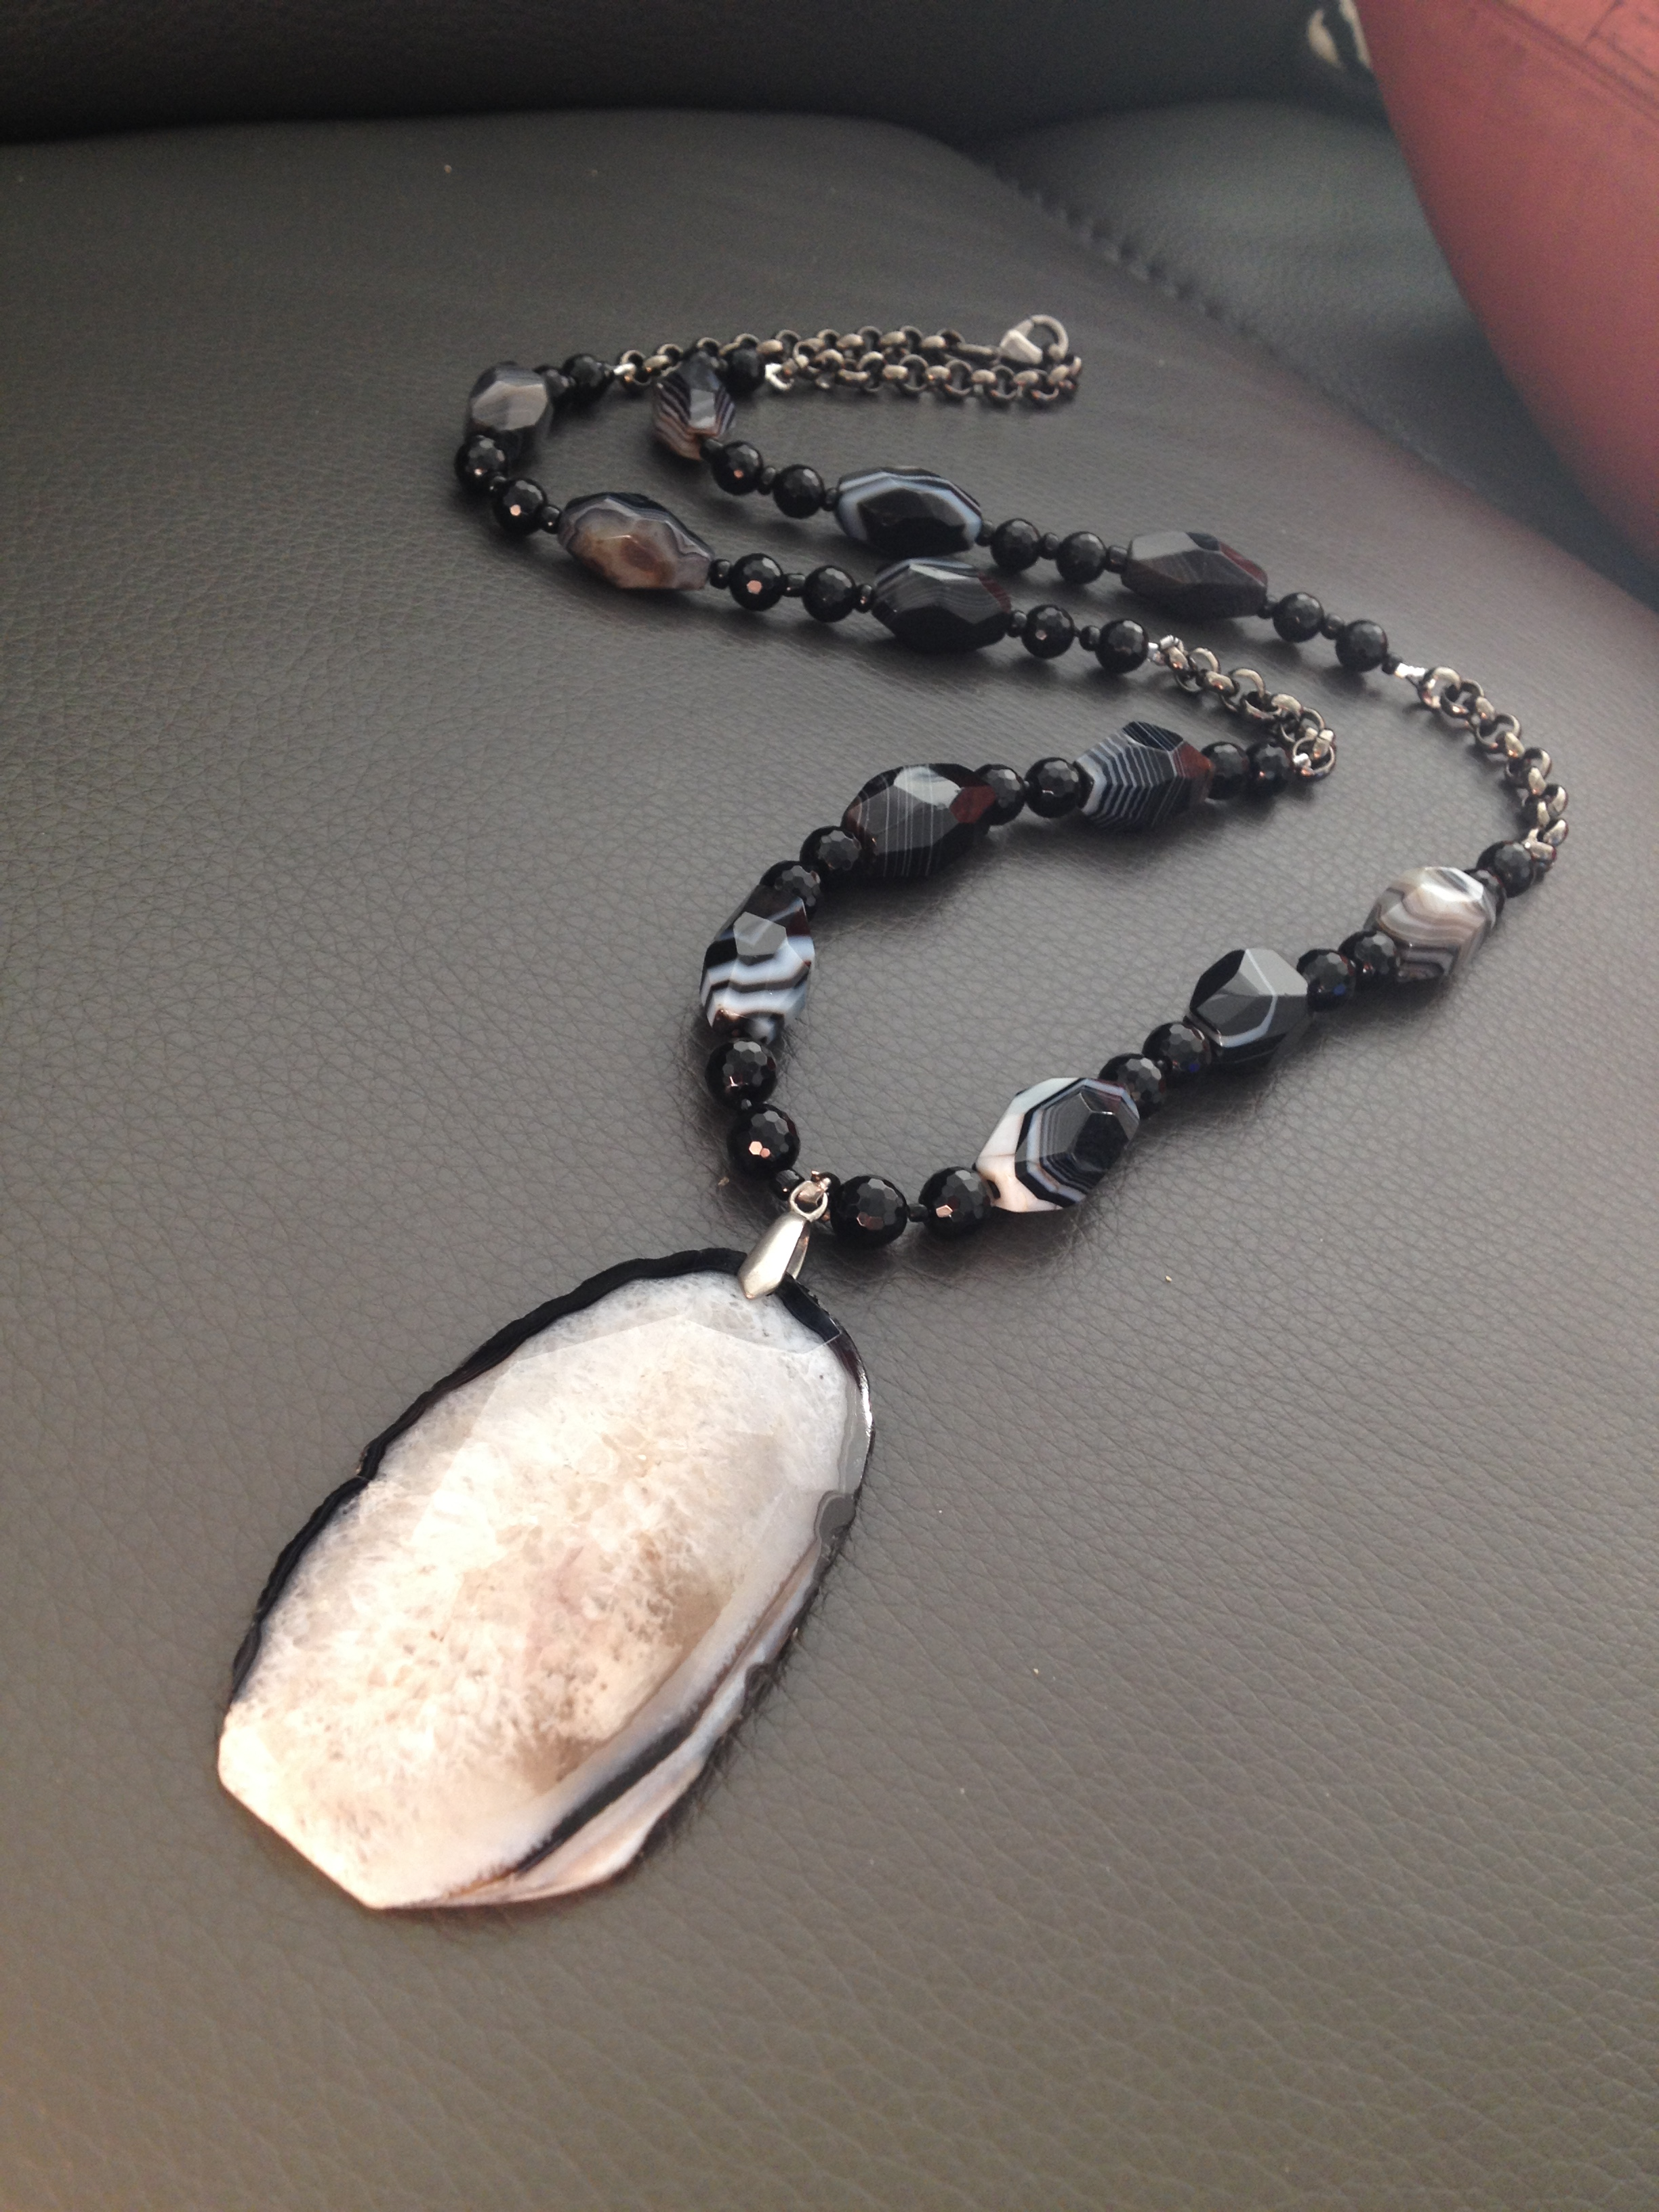 Phyllis Clark's Agate Necklace